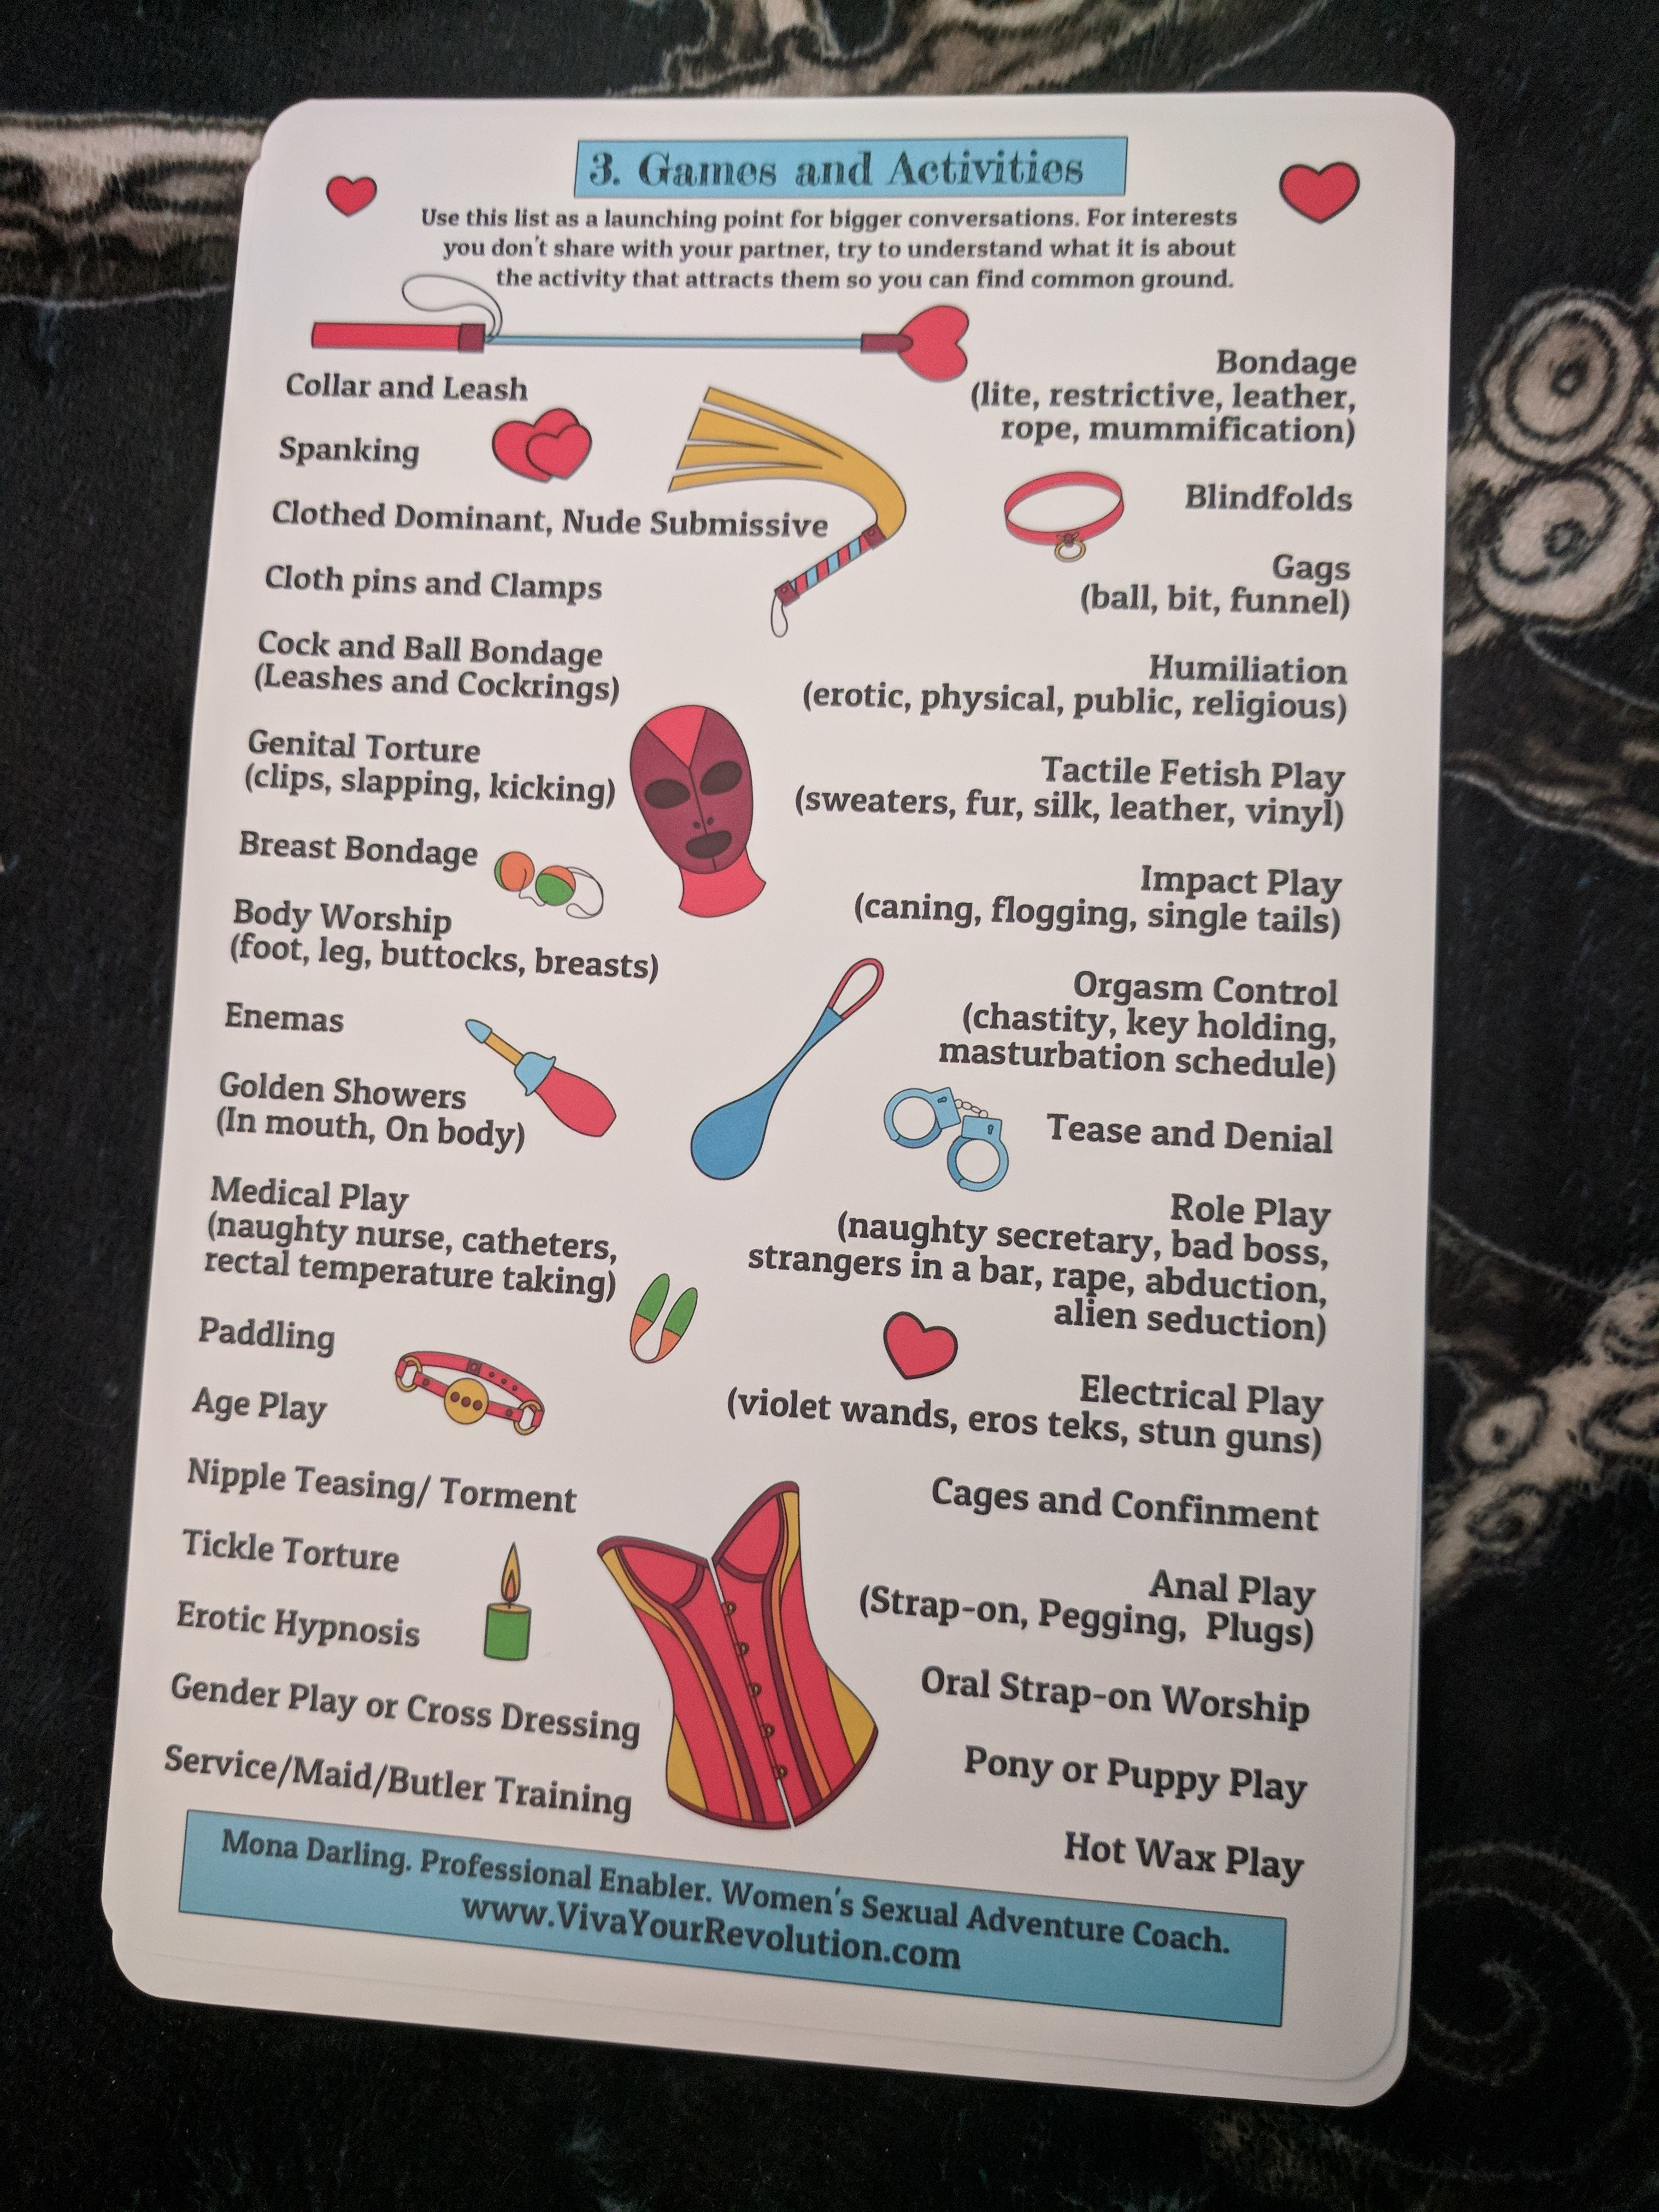 The back of the cards has more info to fill out to figure out your needs better